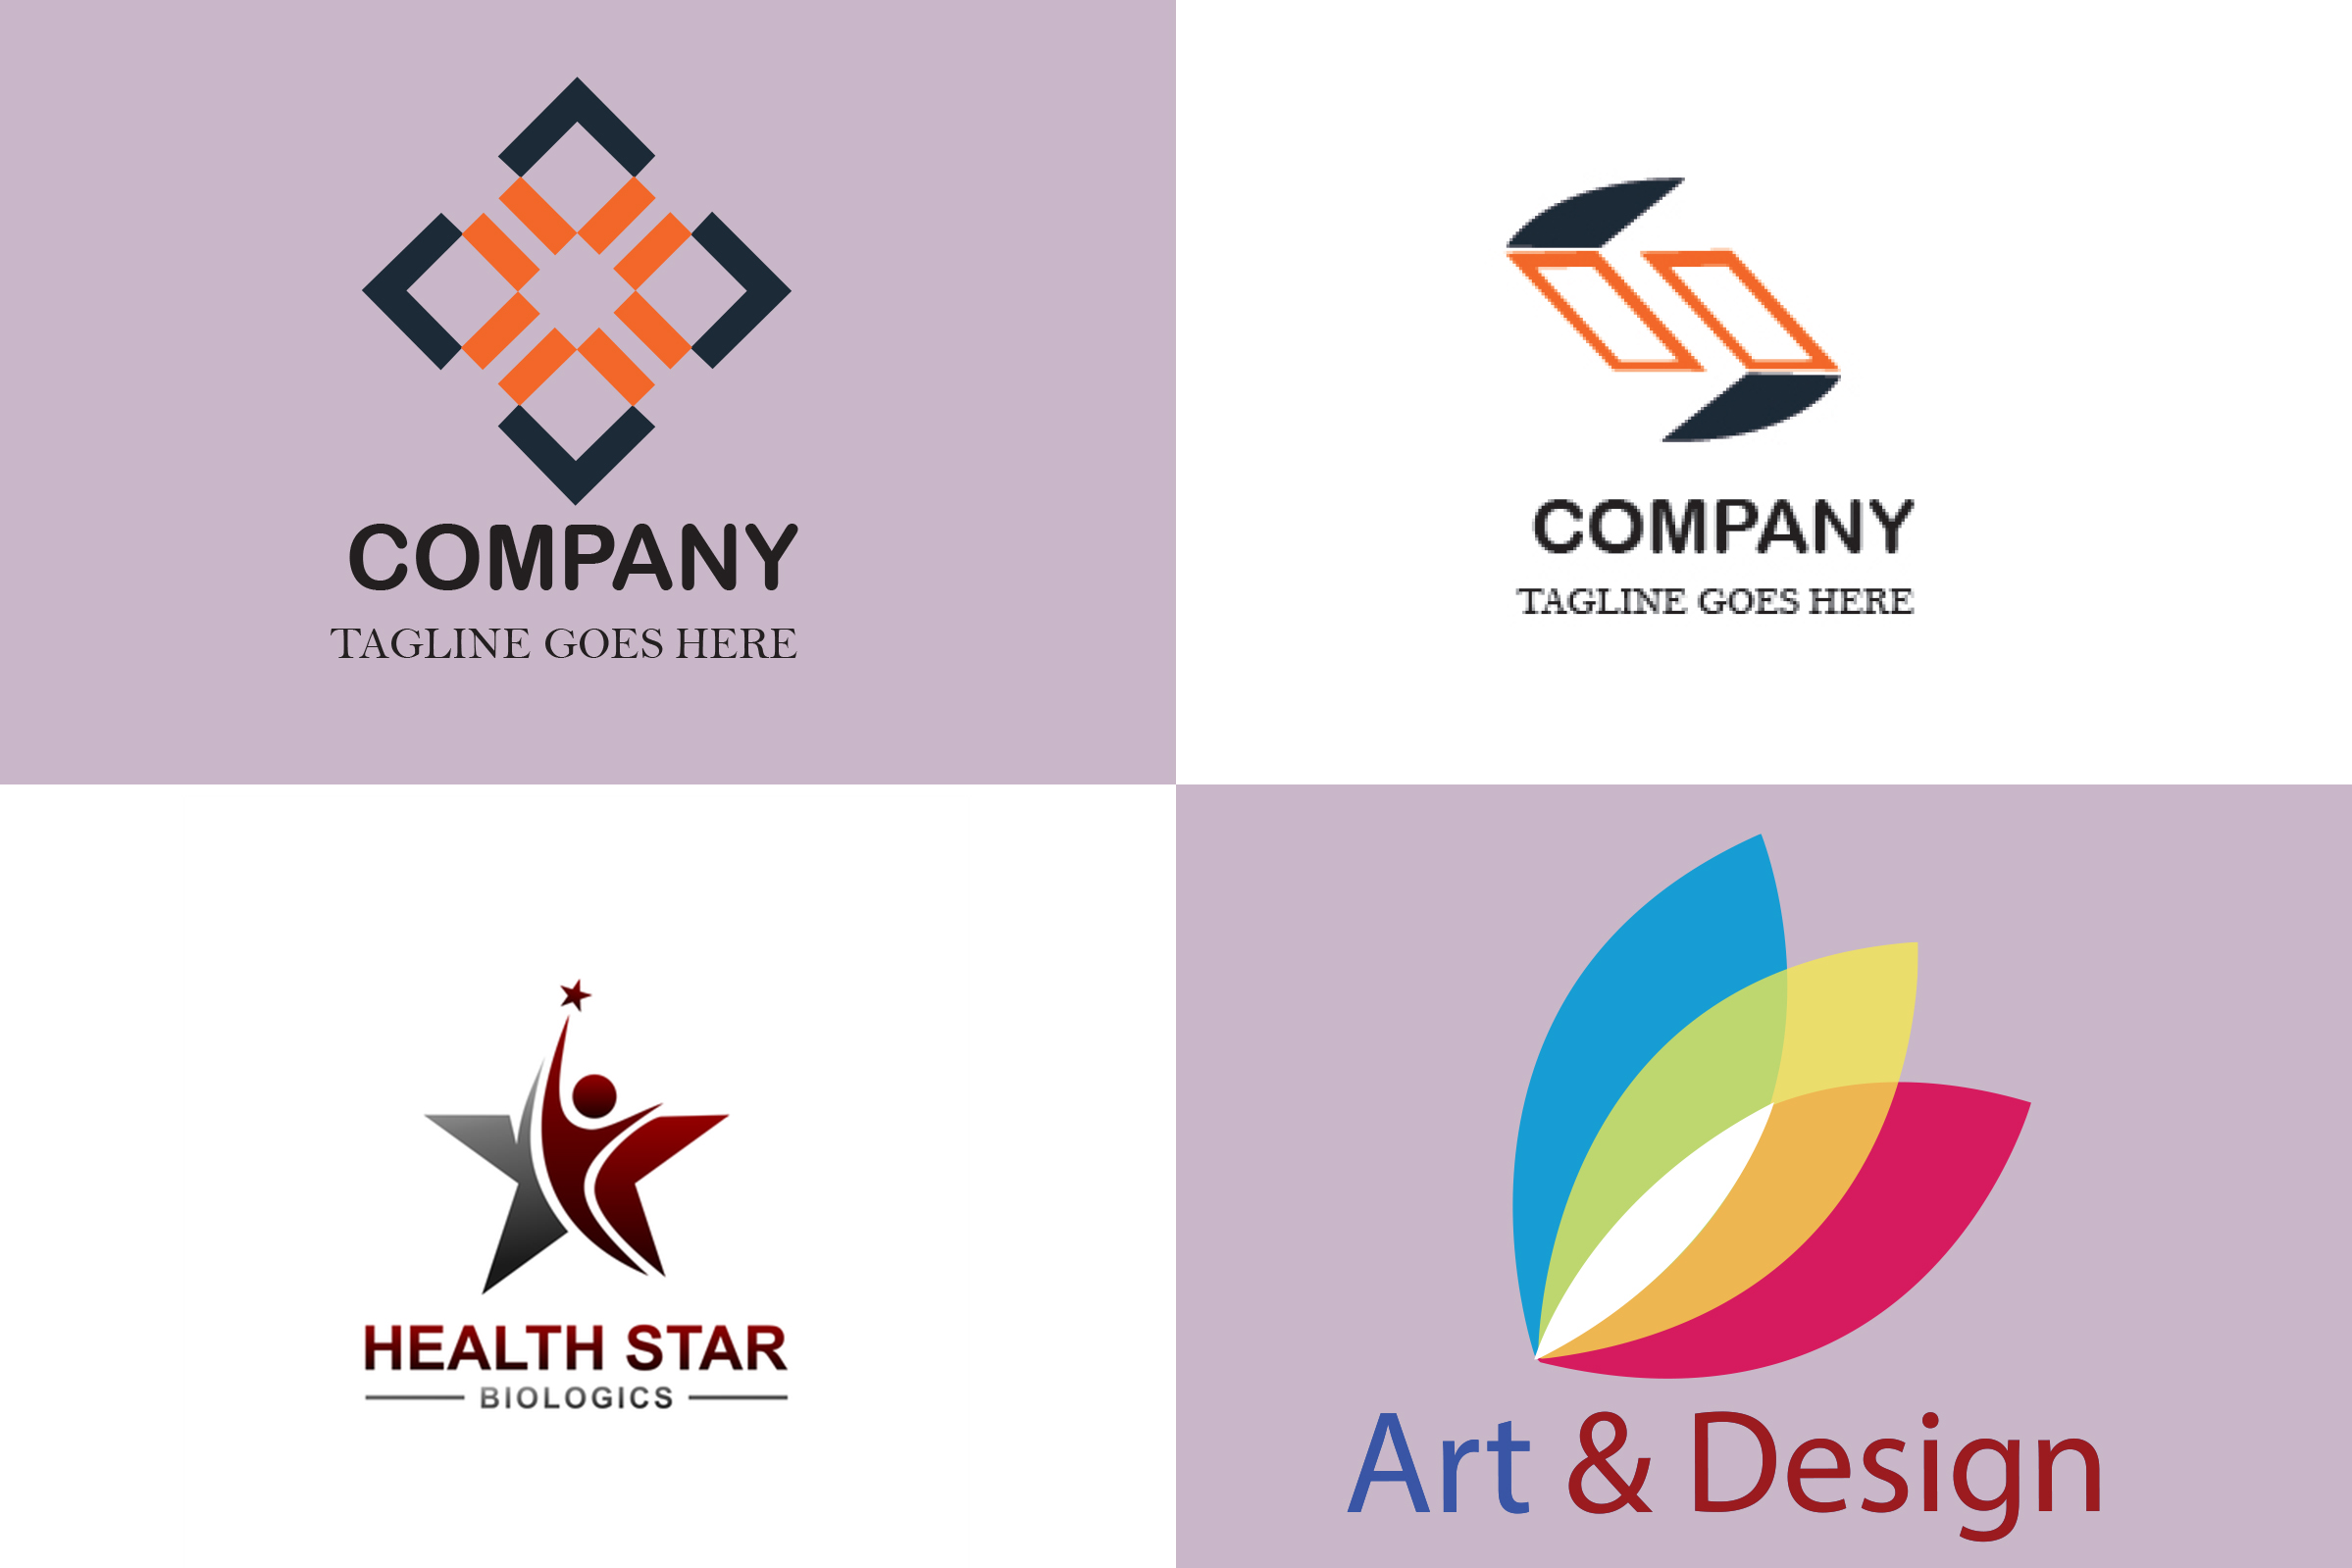 I will design a creative simple minimalist logo for your business or brand